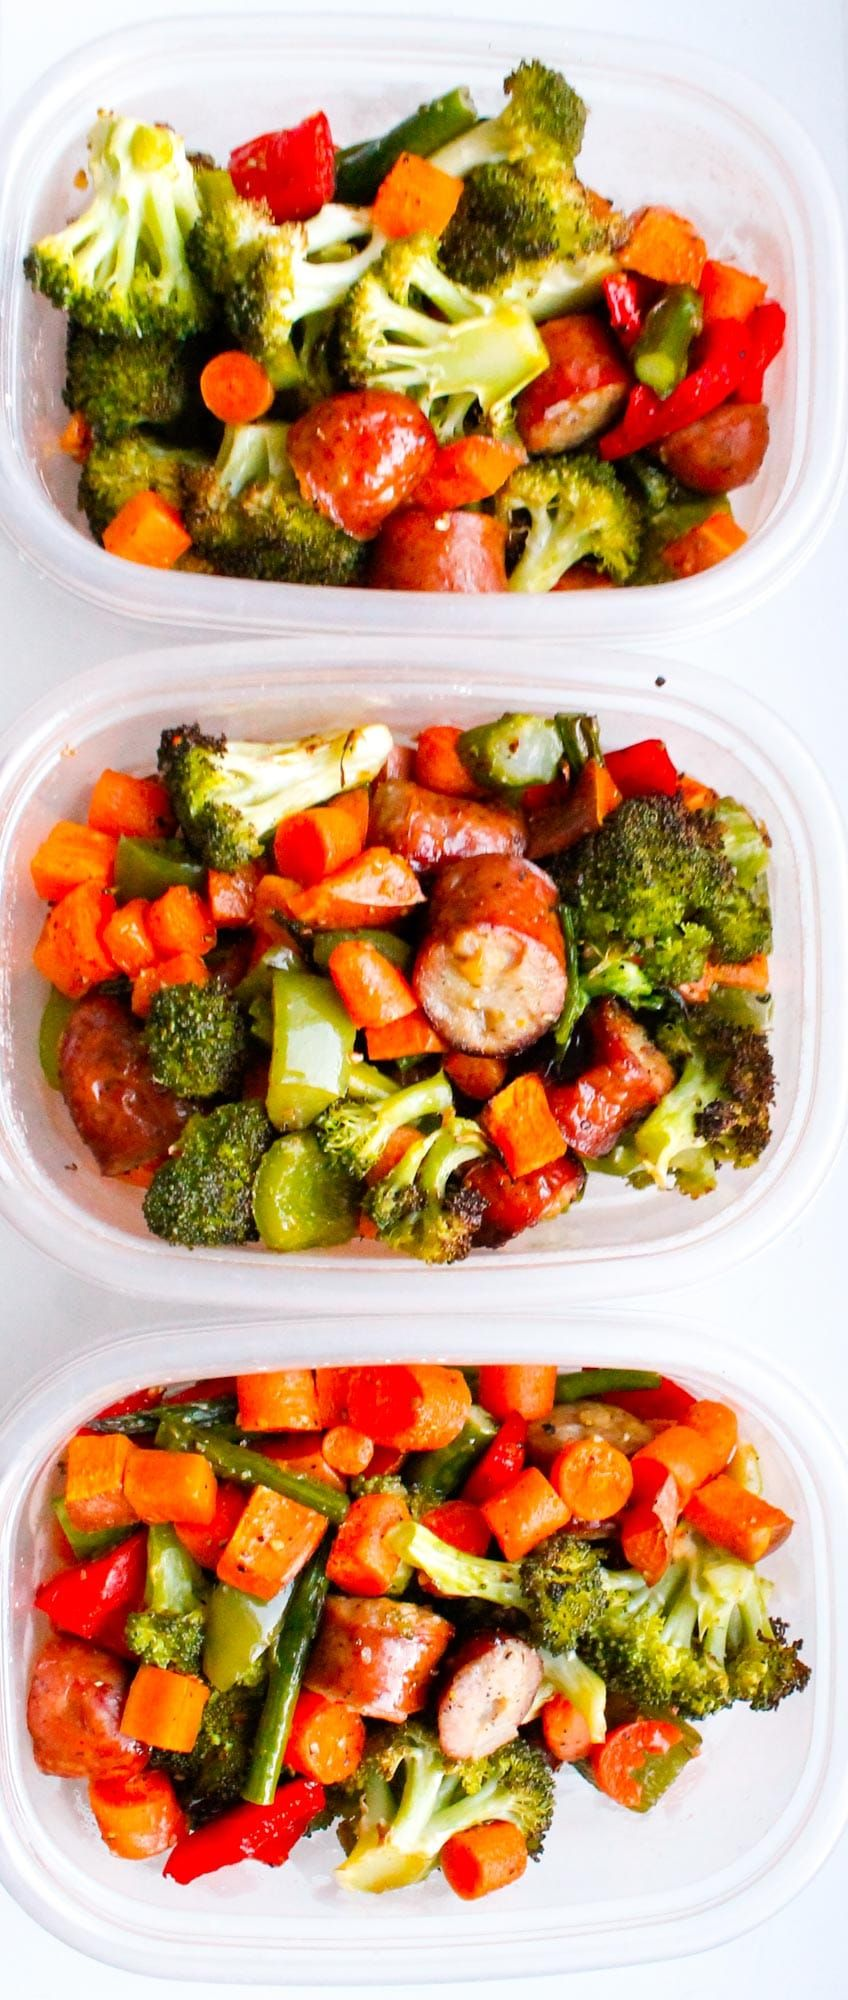 43 Healthy Meal Prep Recipes That'll Make Your Life Easier images